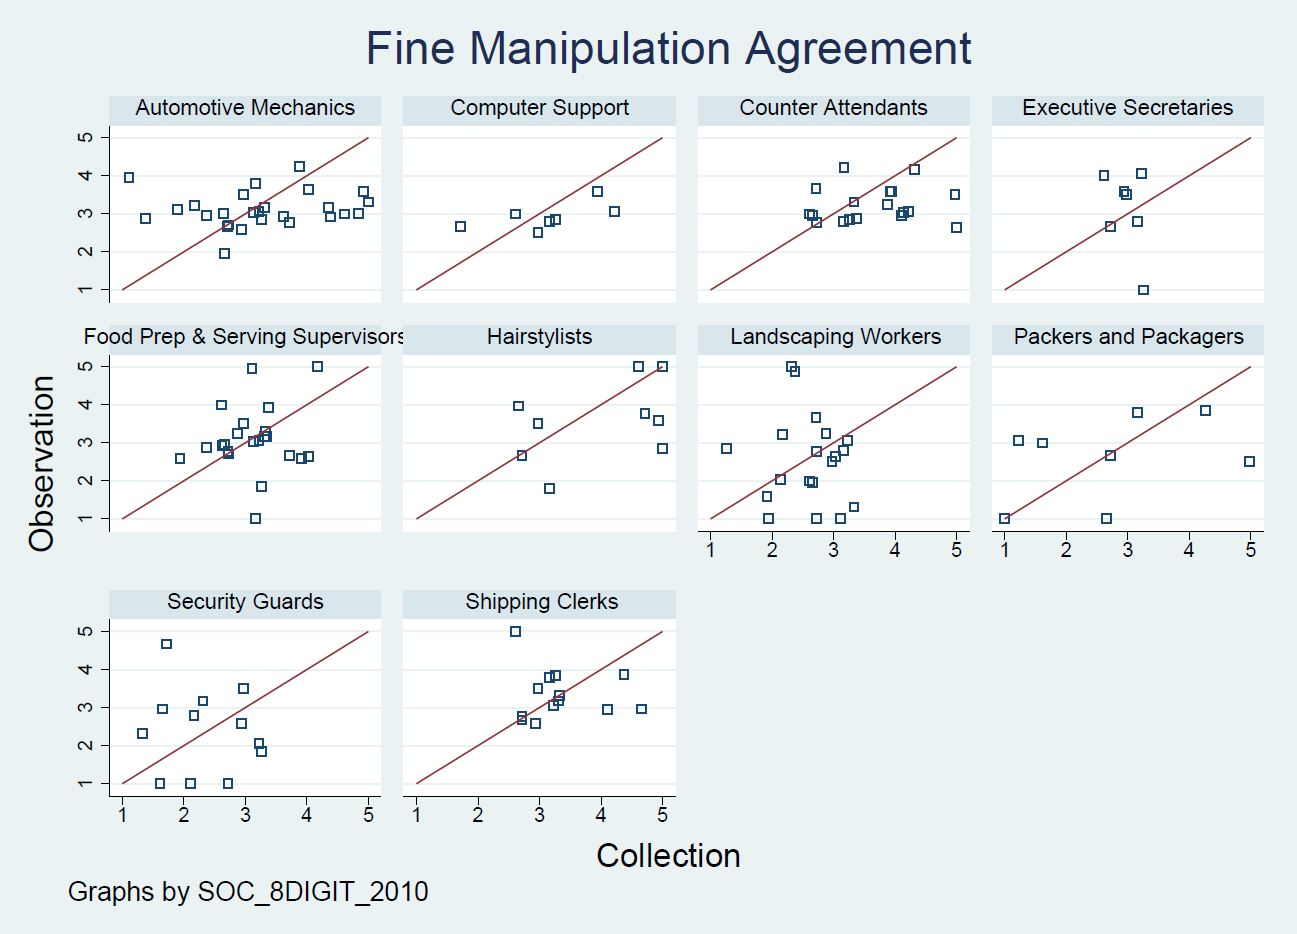 Figure 2: Scatterplots of Agreement for Fine Manipulation